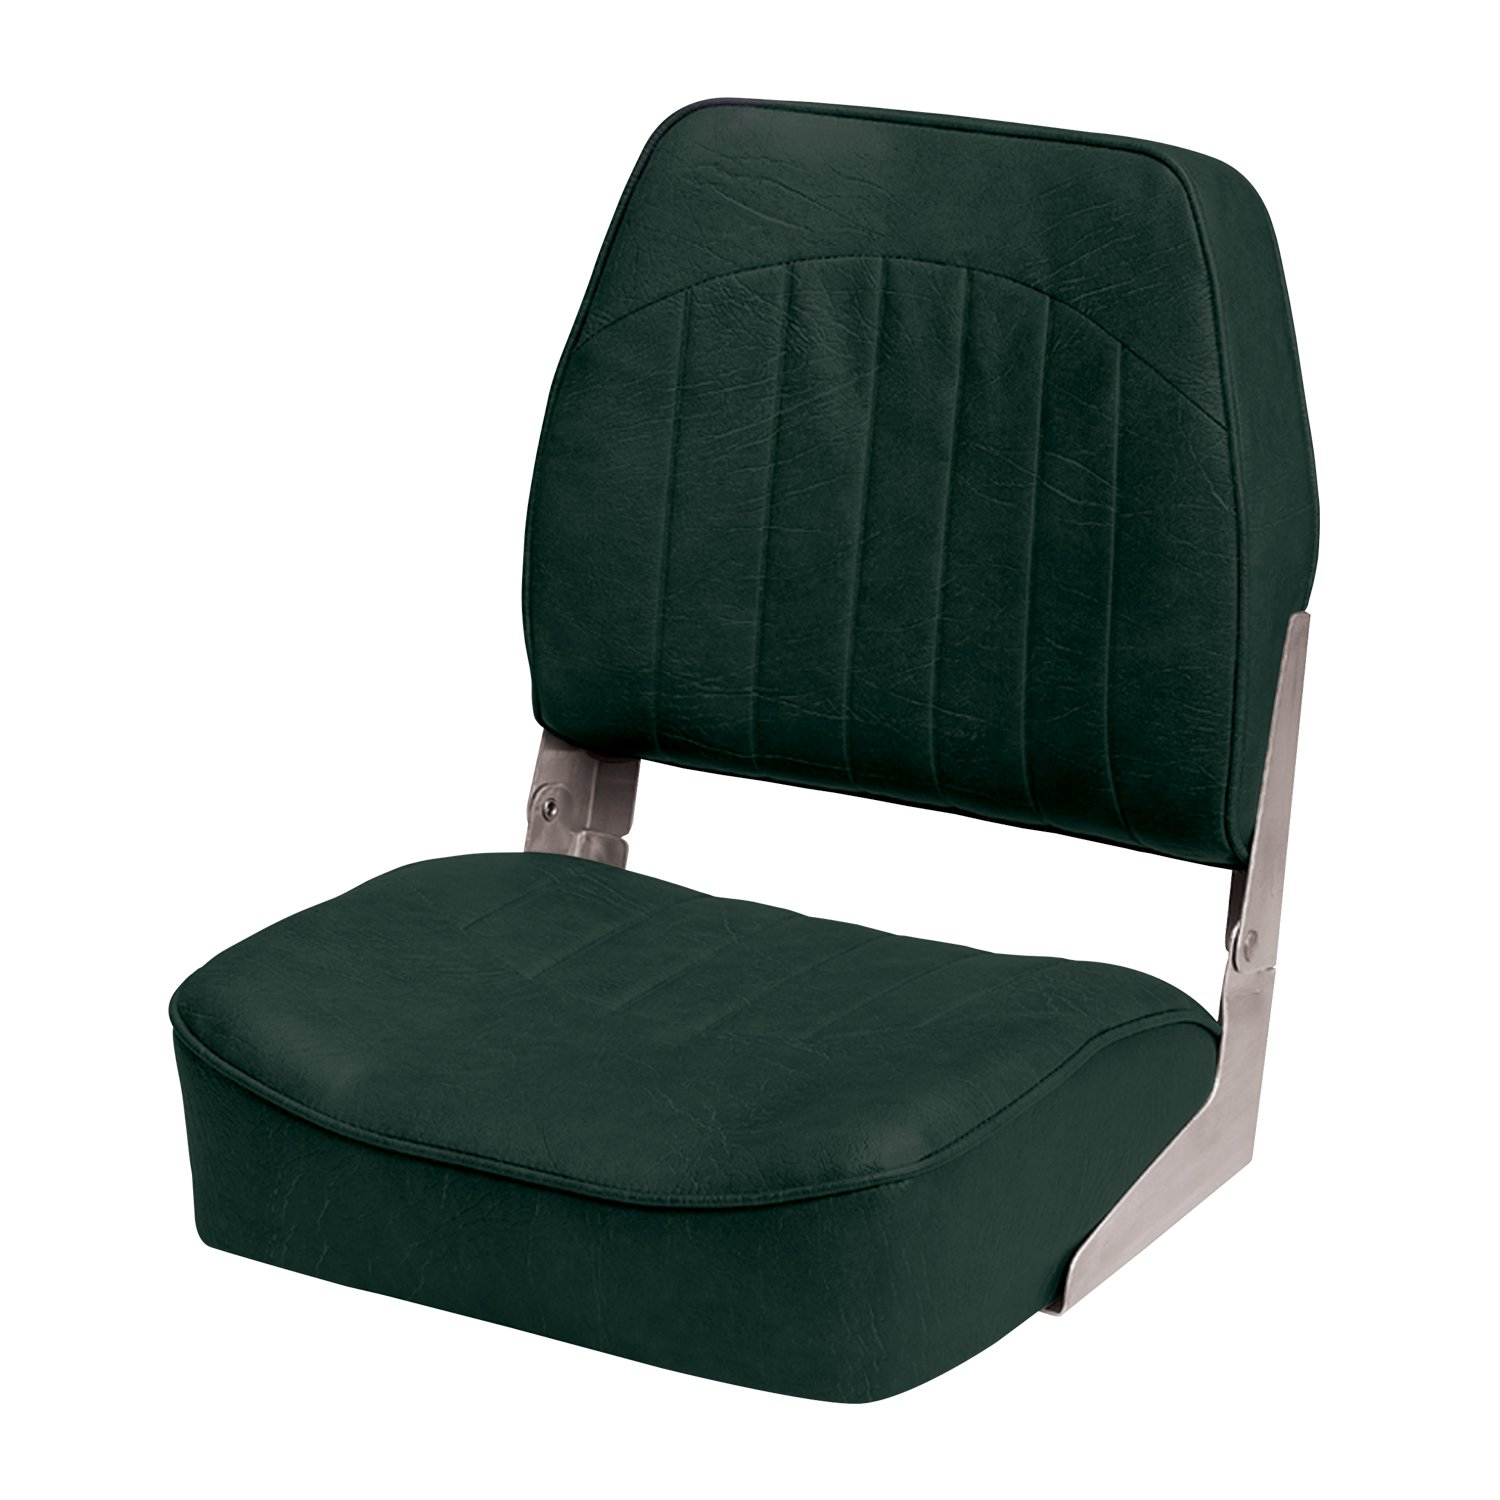 Wise 8WD734PLS-713 Low Back Boat Seat, Green